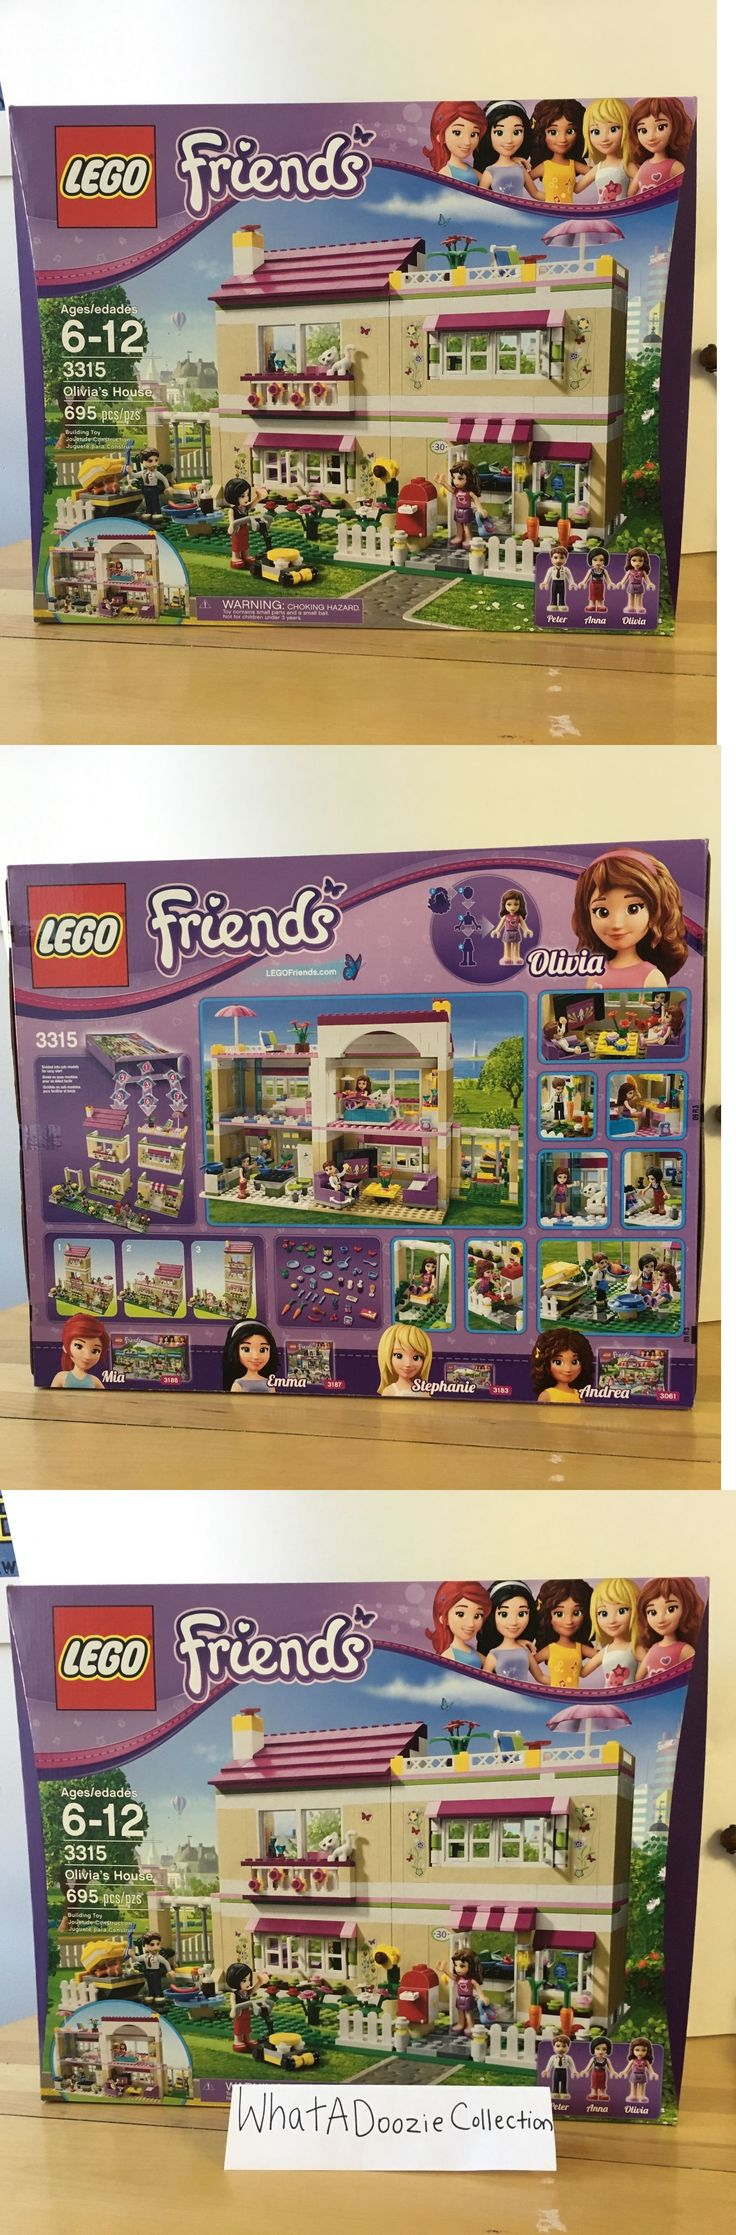 LEGO Complete Sets and Packs 19006: Lego Friends: Olivia S House 3315- Brand New! -> BUY IT NOW ONLY: $115.99 on eBay!